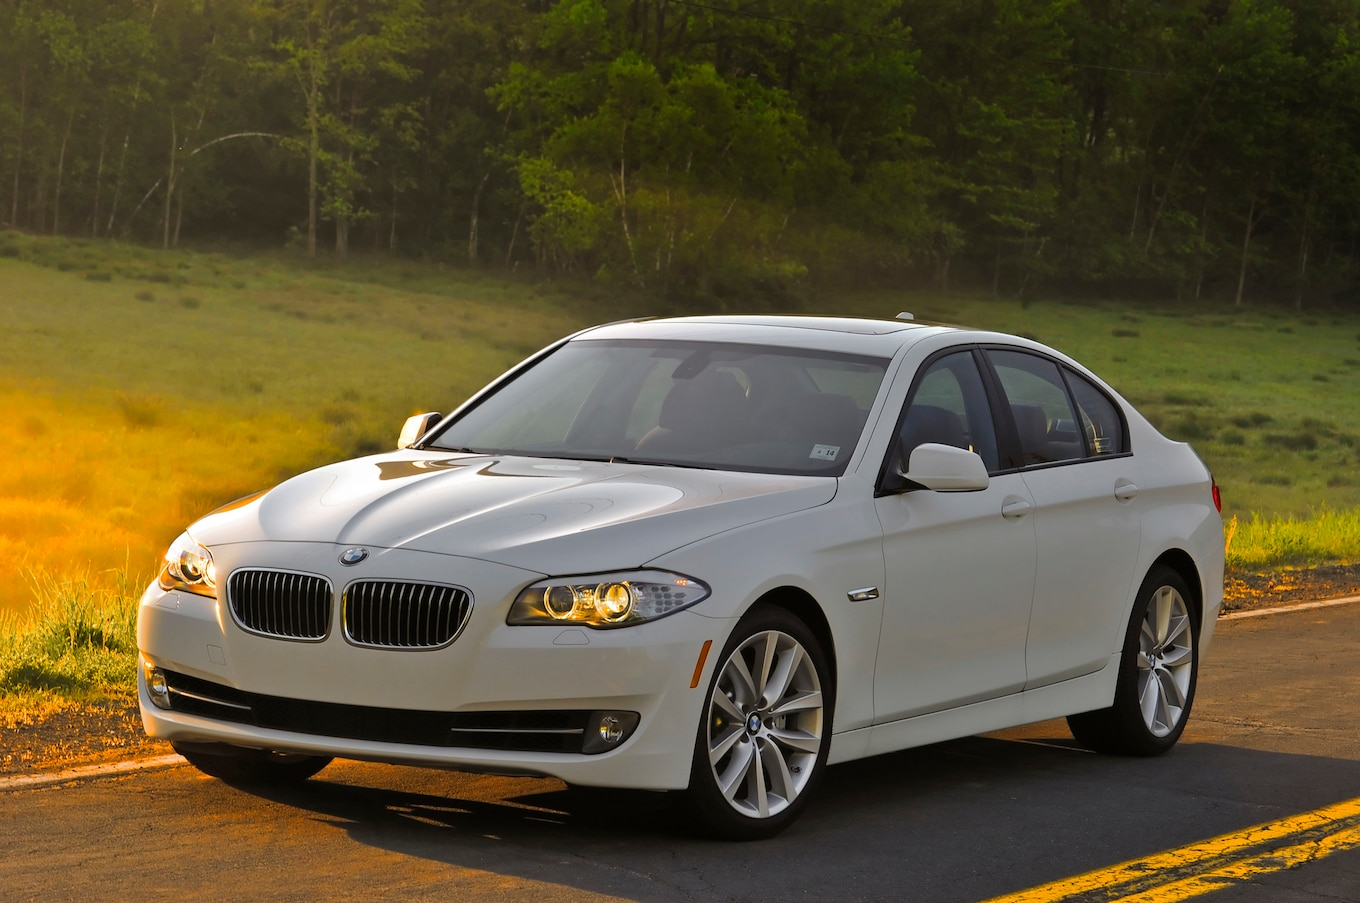 2013 Bmw 5series Reviews And Rating  Motor Trend